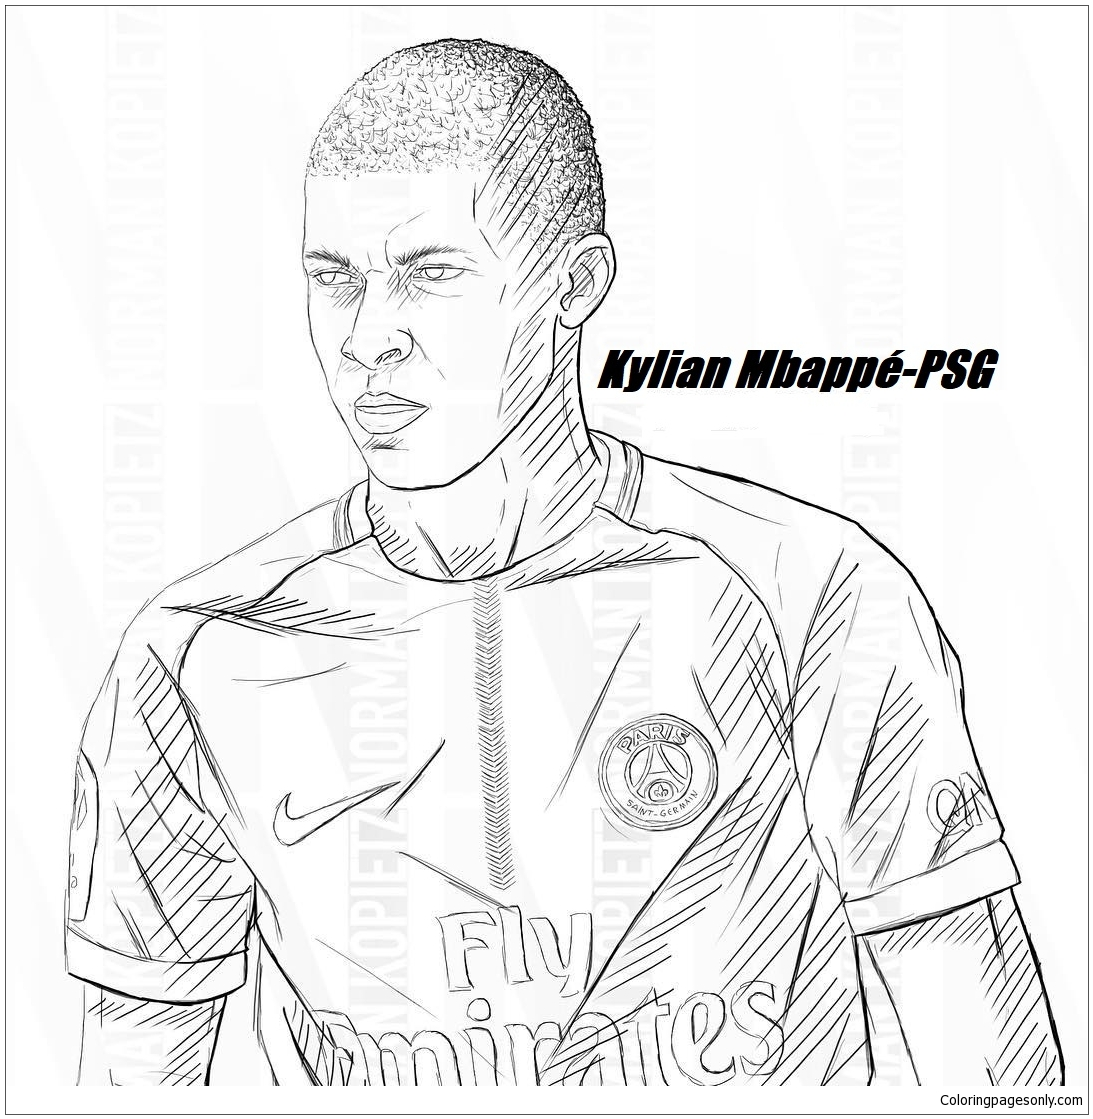 Kylian Mbapp image 8 Coloring